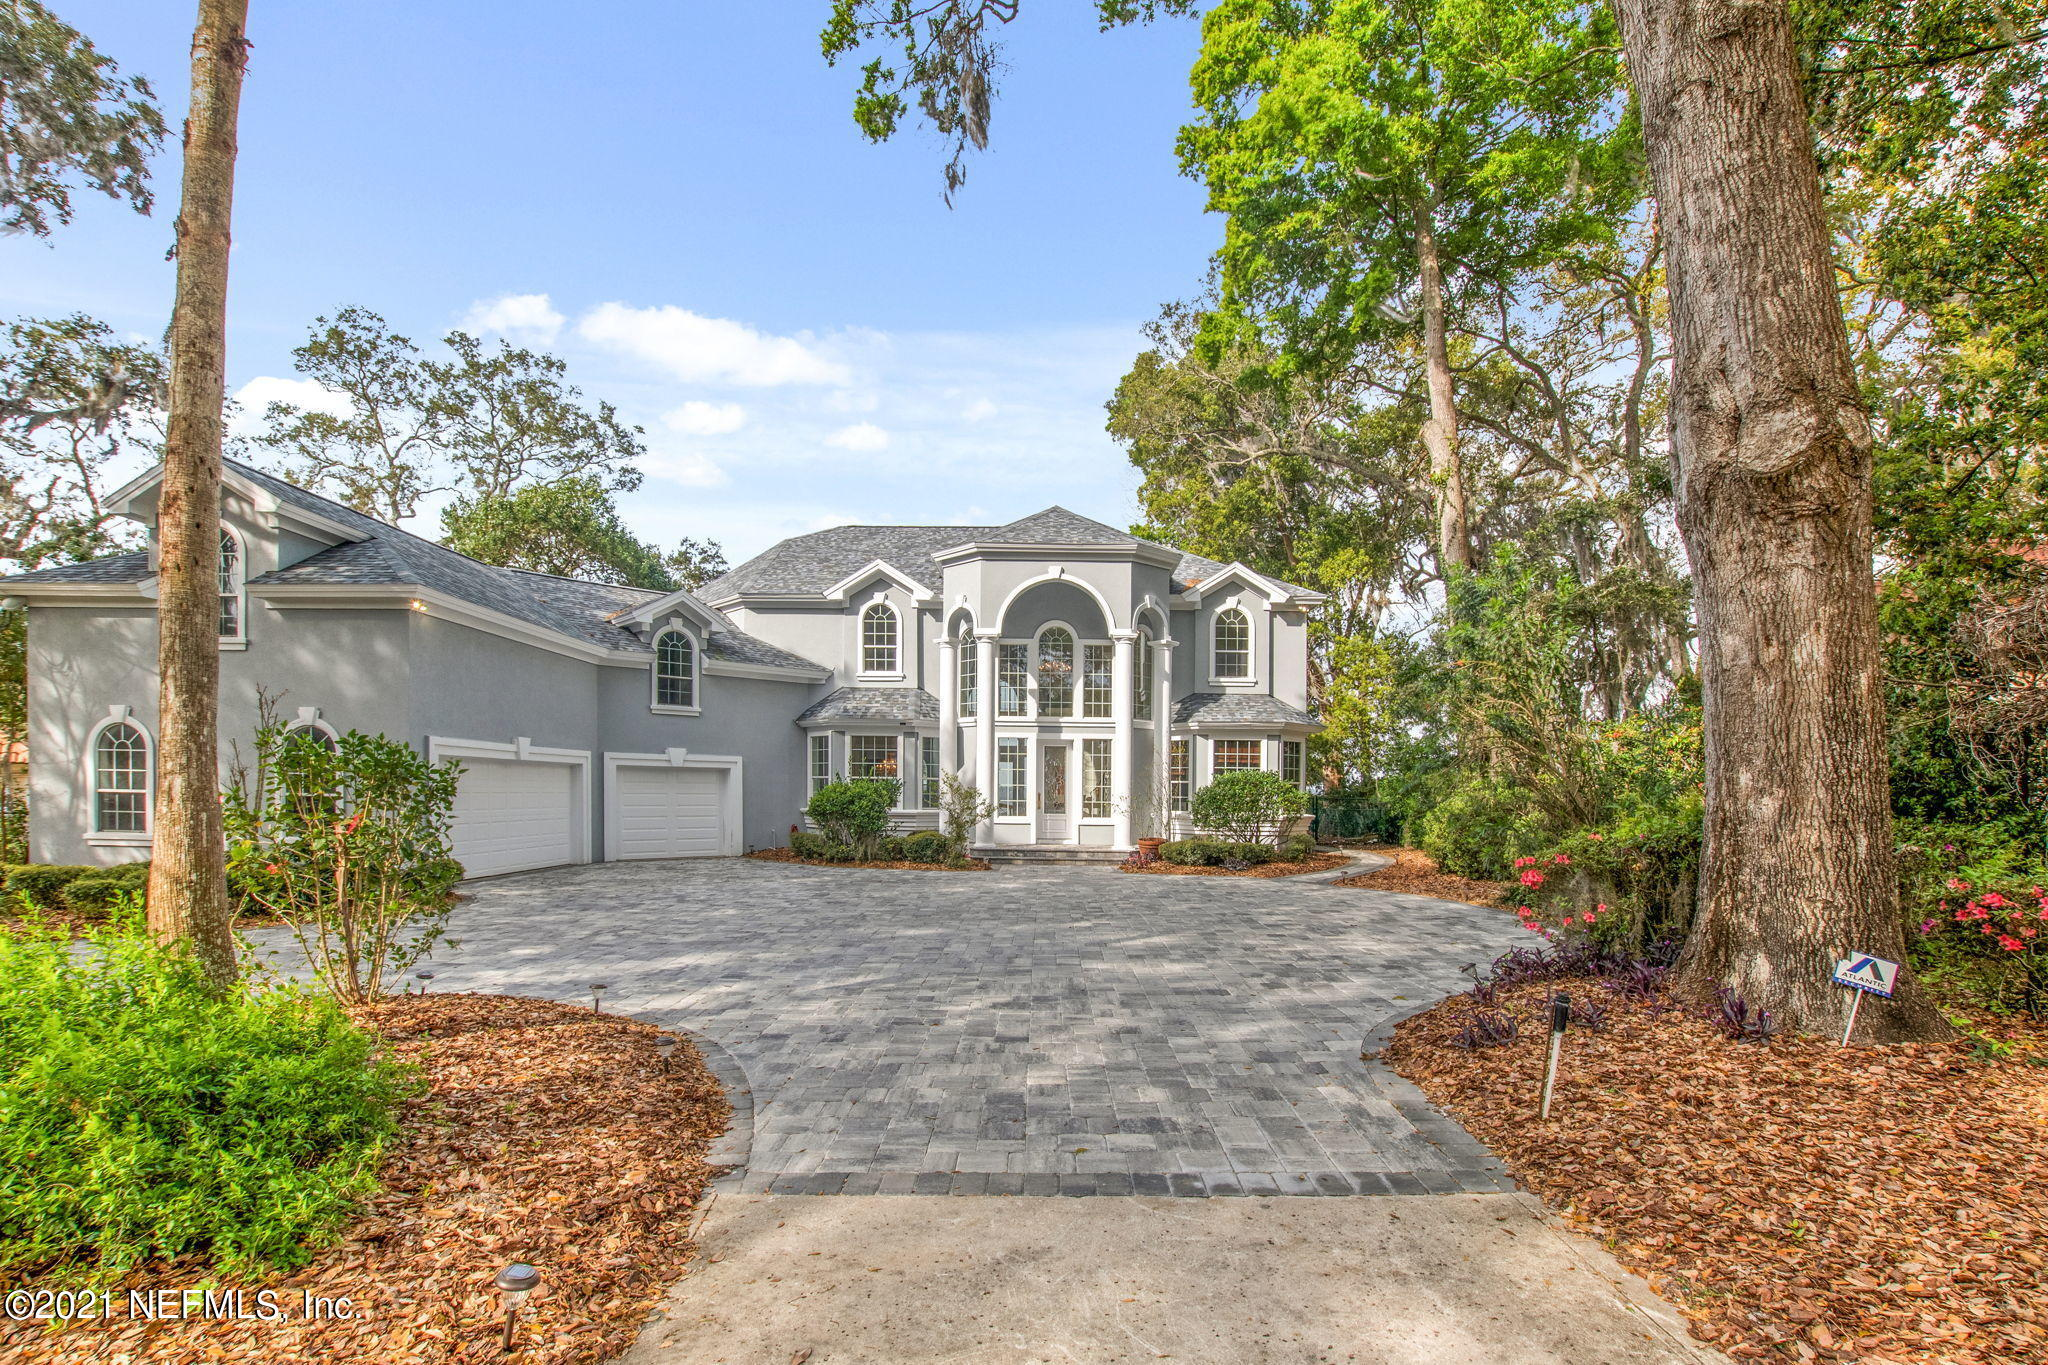 This Beautiful home  on the St. Johns River captures the breathtaking views of the evening sunsets ,from every room in this home.  Located in one of the areas that boasts of a HIGH bluff! The house sits on almost an acre of land, has a very desirable open floorplan, including a big game/bonus room above the garage. Recently updated kitchen and bath, replaced 2 A/C units, windows and French doors. Newly painted. Pavers added, dock redone, Pool resurfaced, The Bulkhead has been extended. A feature that has been grandfathered in!  This home is indeed a waterfront beauty!!! with priceless views of the river !!